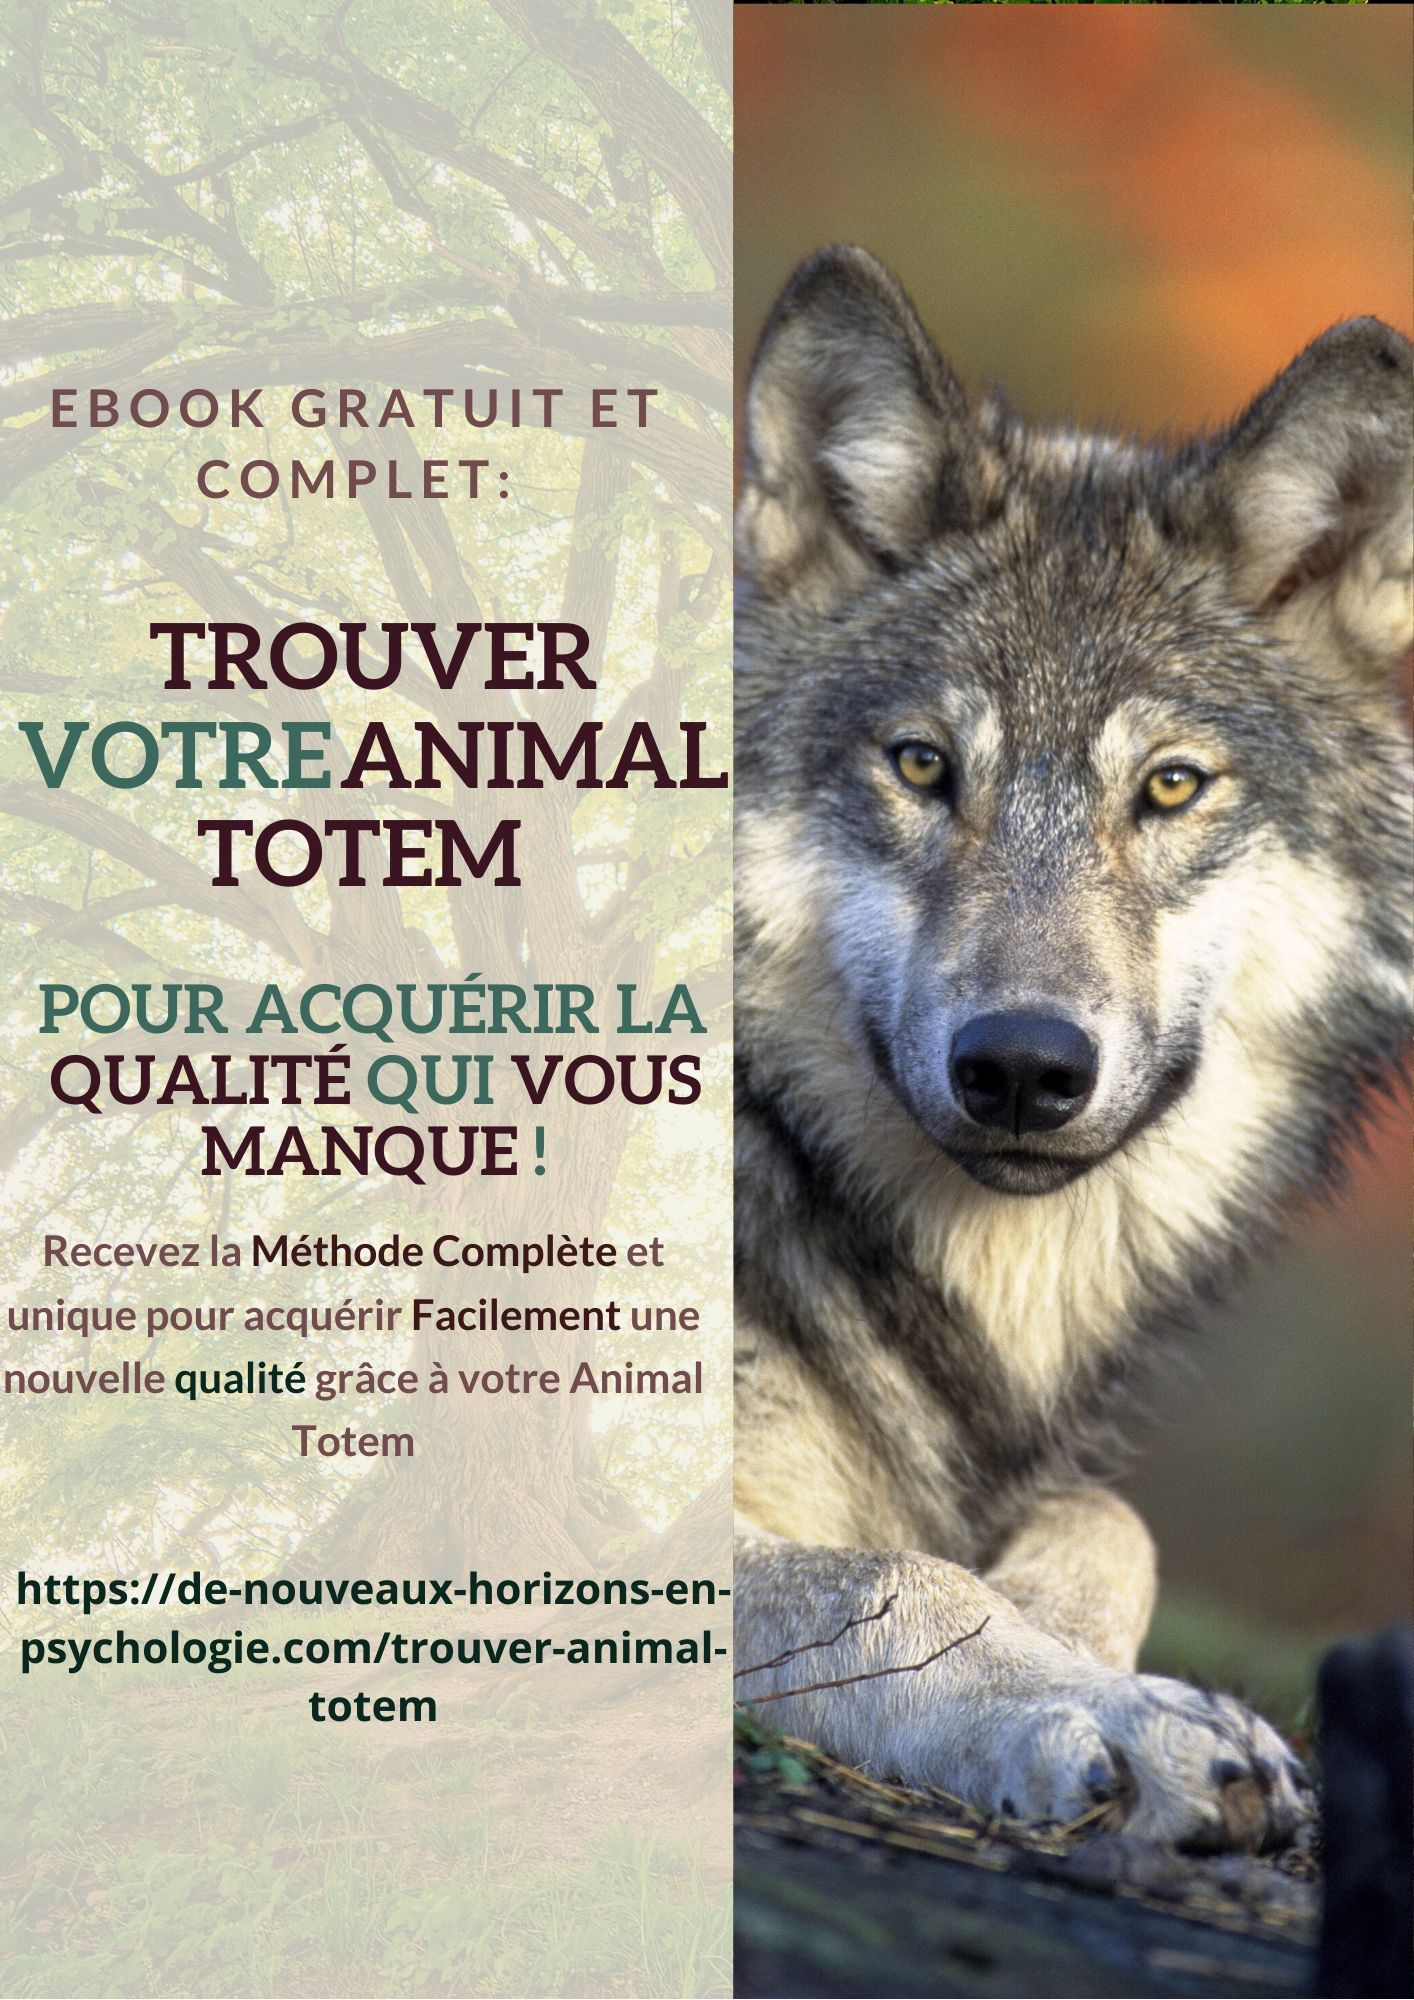 Trouver son animal totem